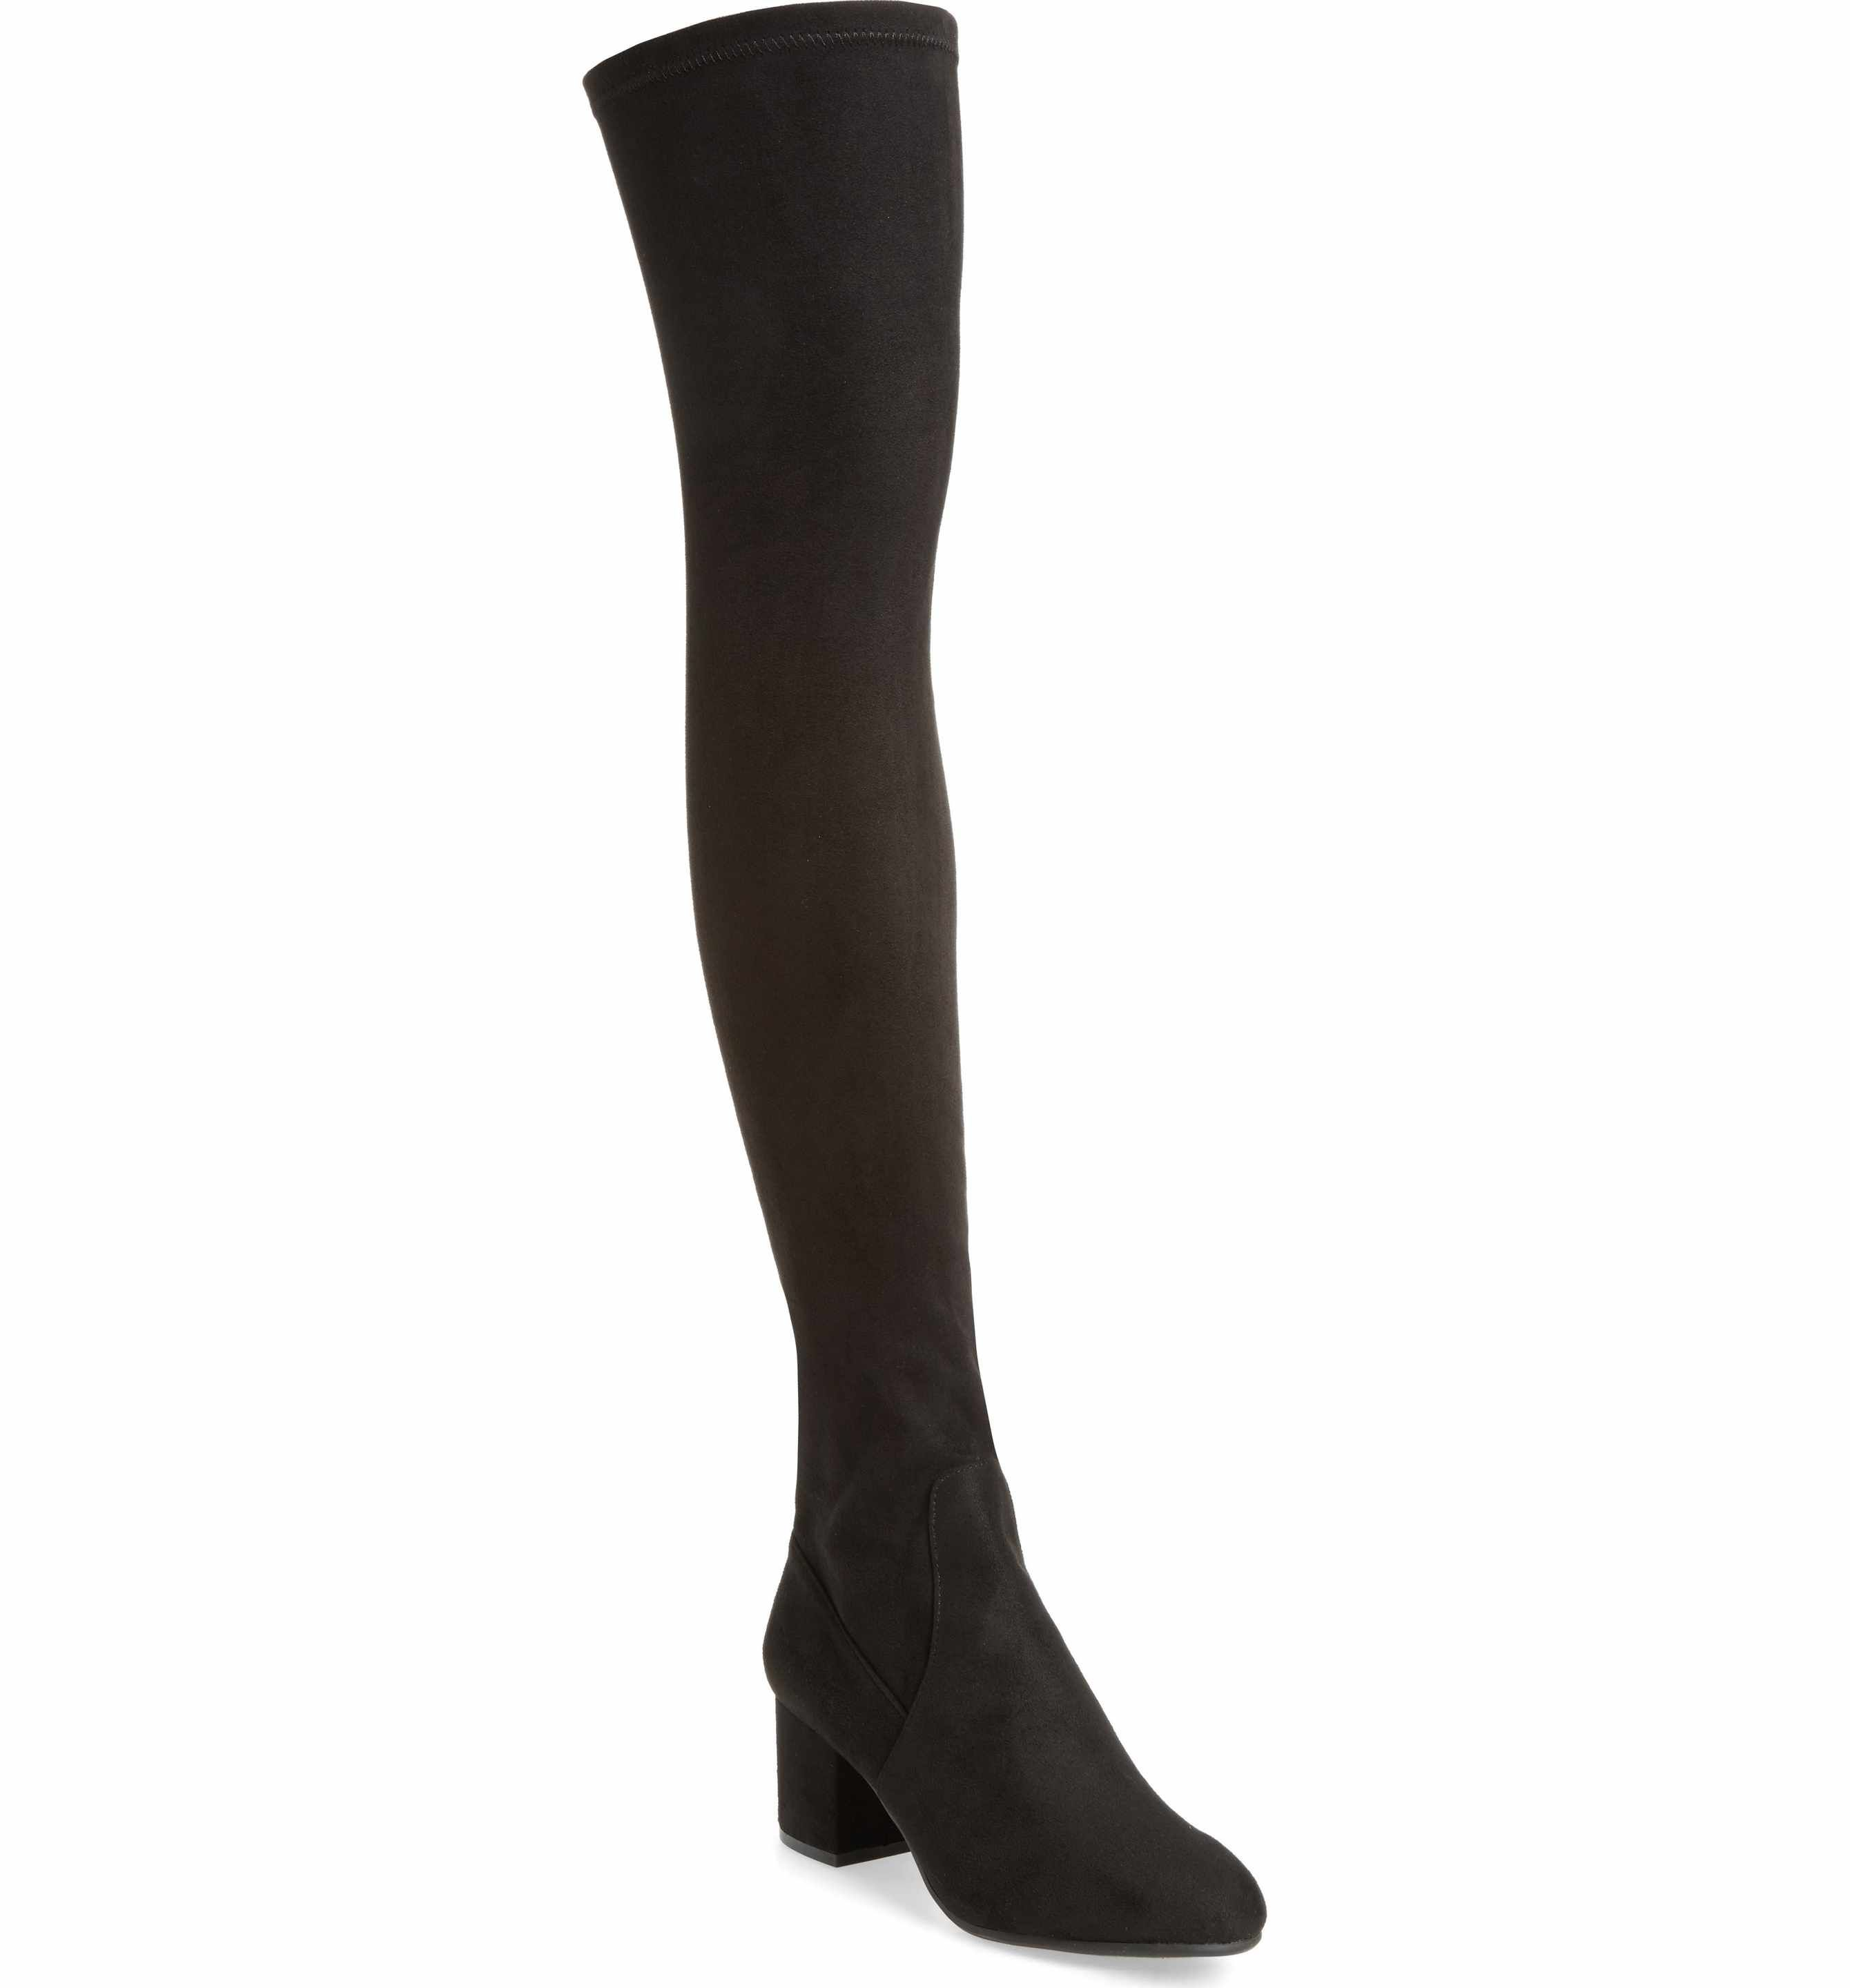 4fead259366 Isaac Over the Knee Boot. Main Image - Steve Madden ...